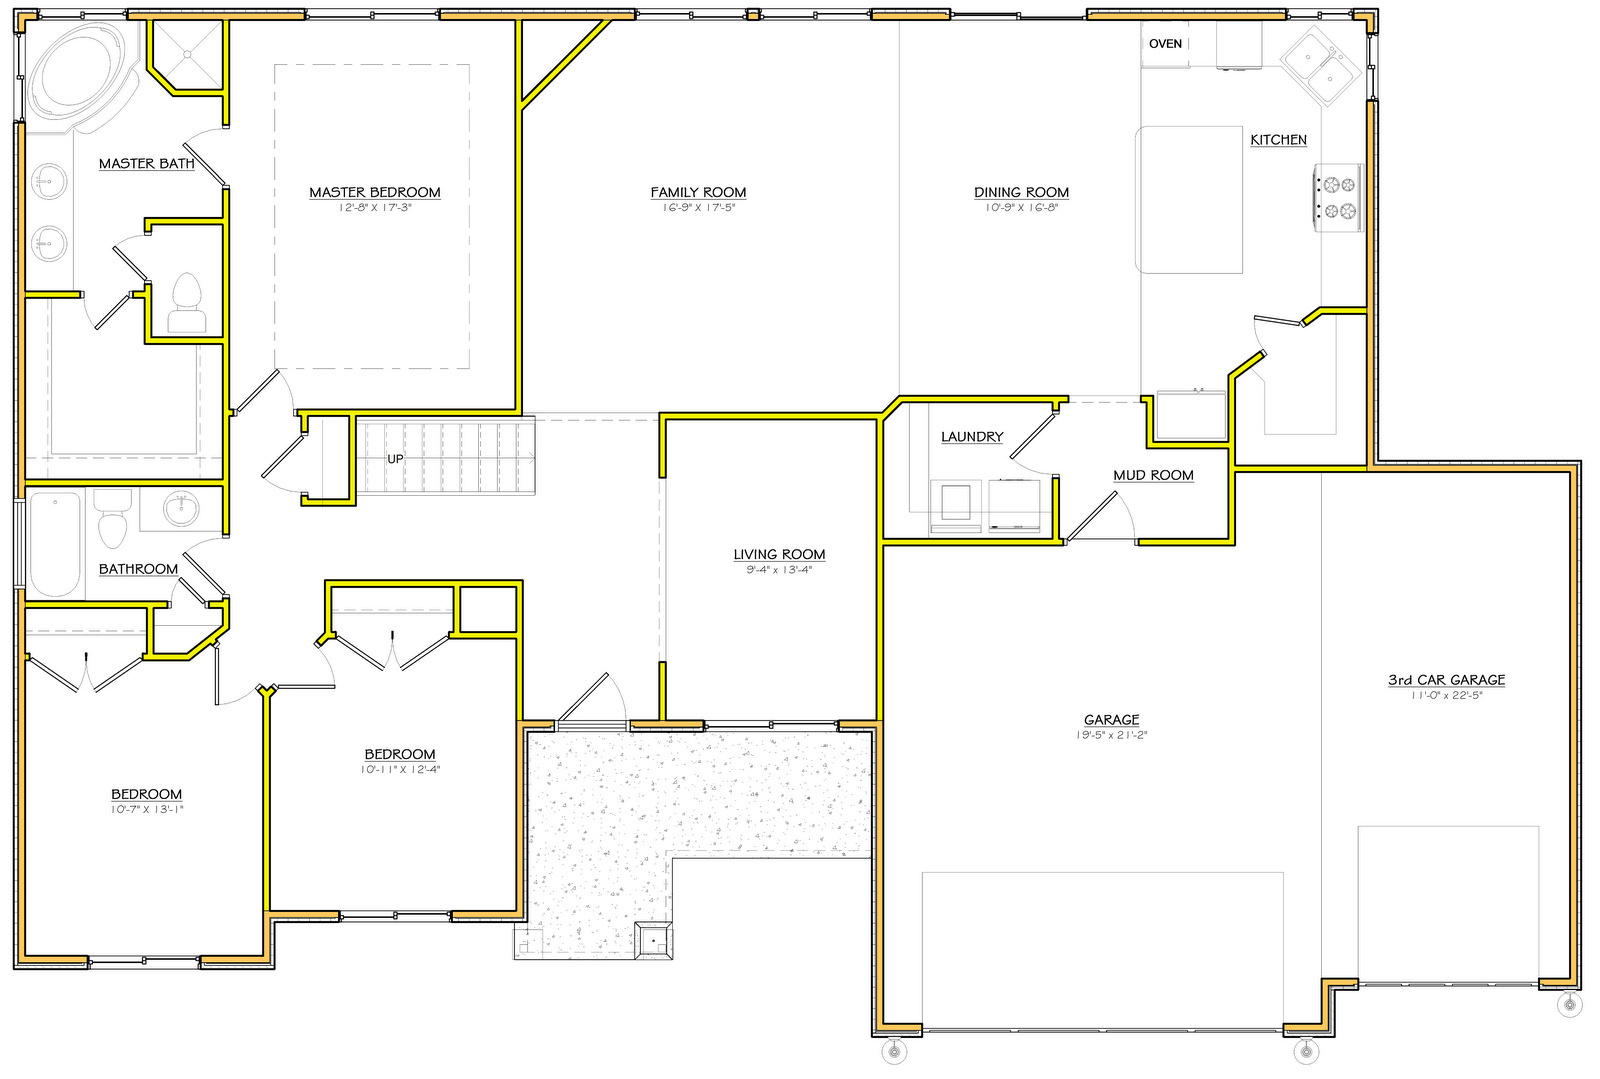 House plans utah home mansion for House plans in utah